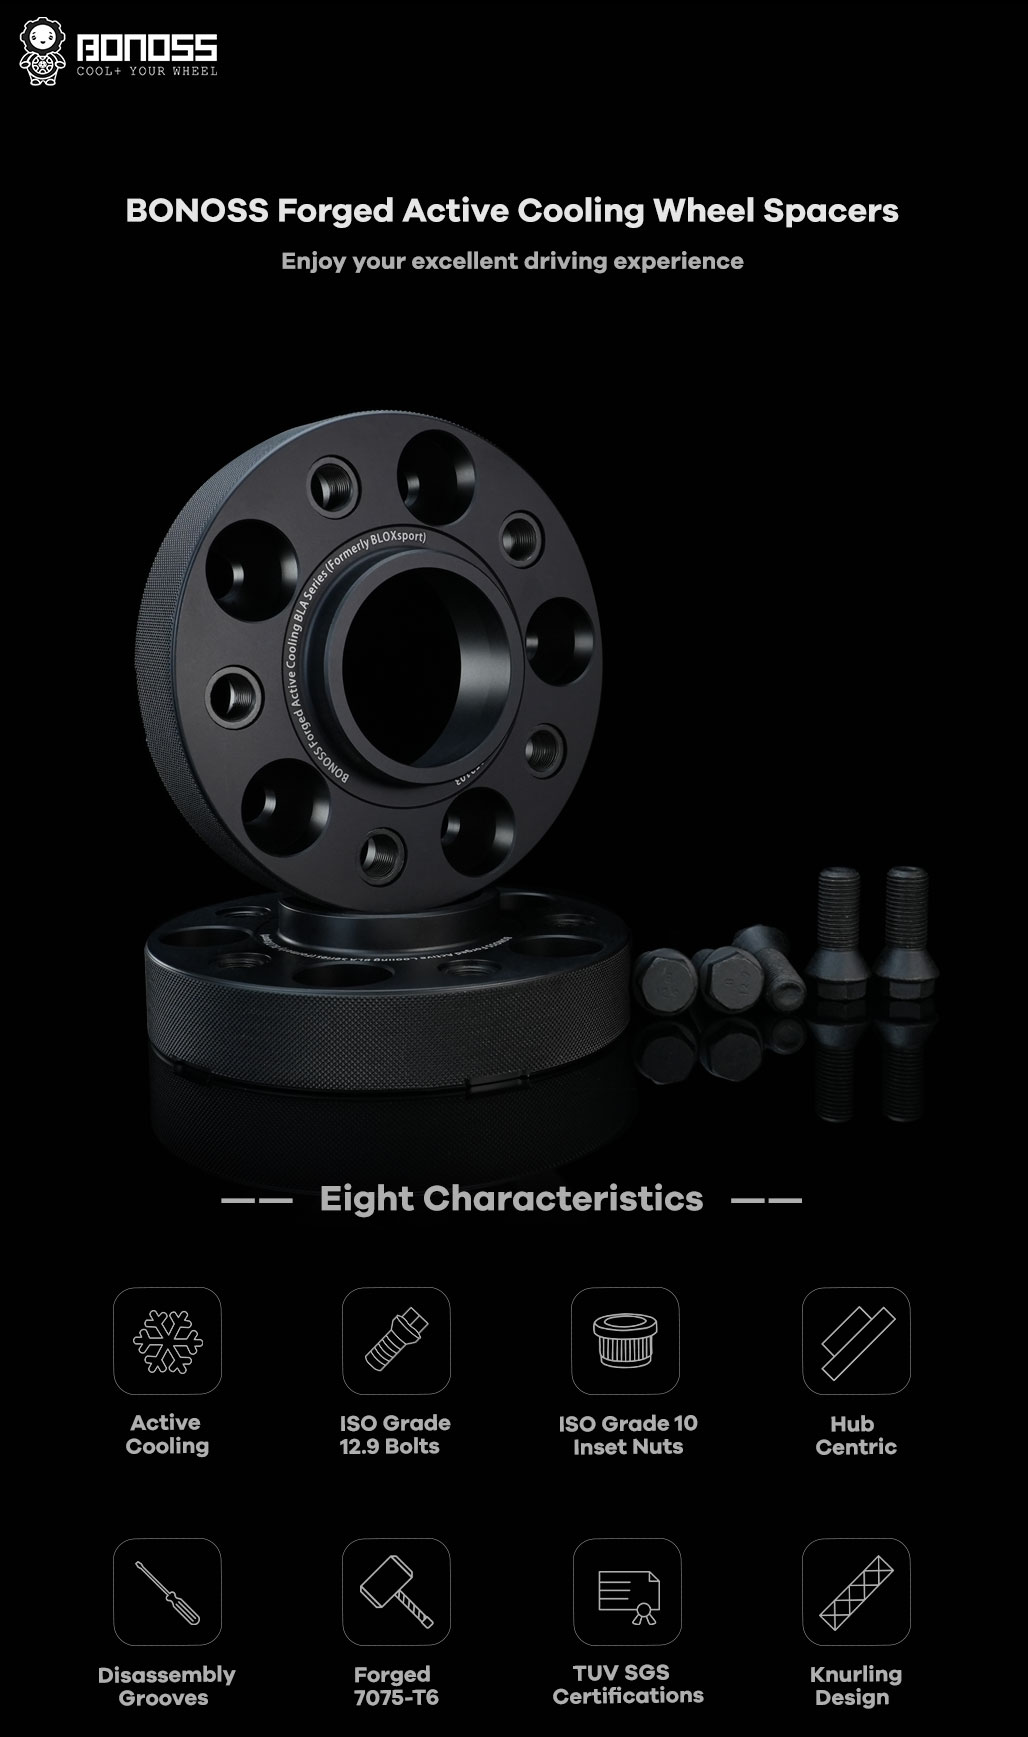 AL7075-T6-BONOSS-forged-active-cooling-5-Lug-5x120-wheel-spacers-by-lulu-1